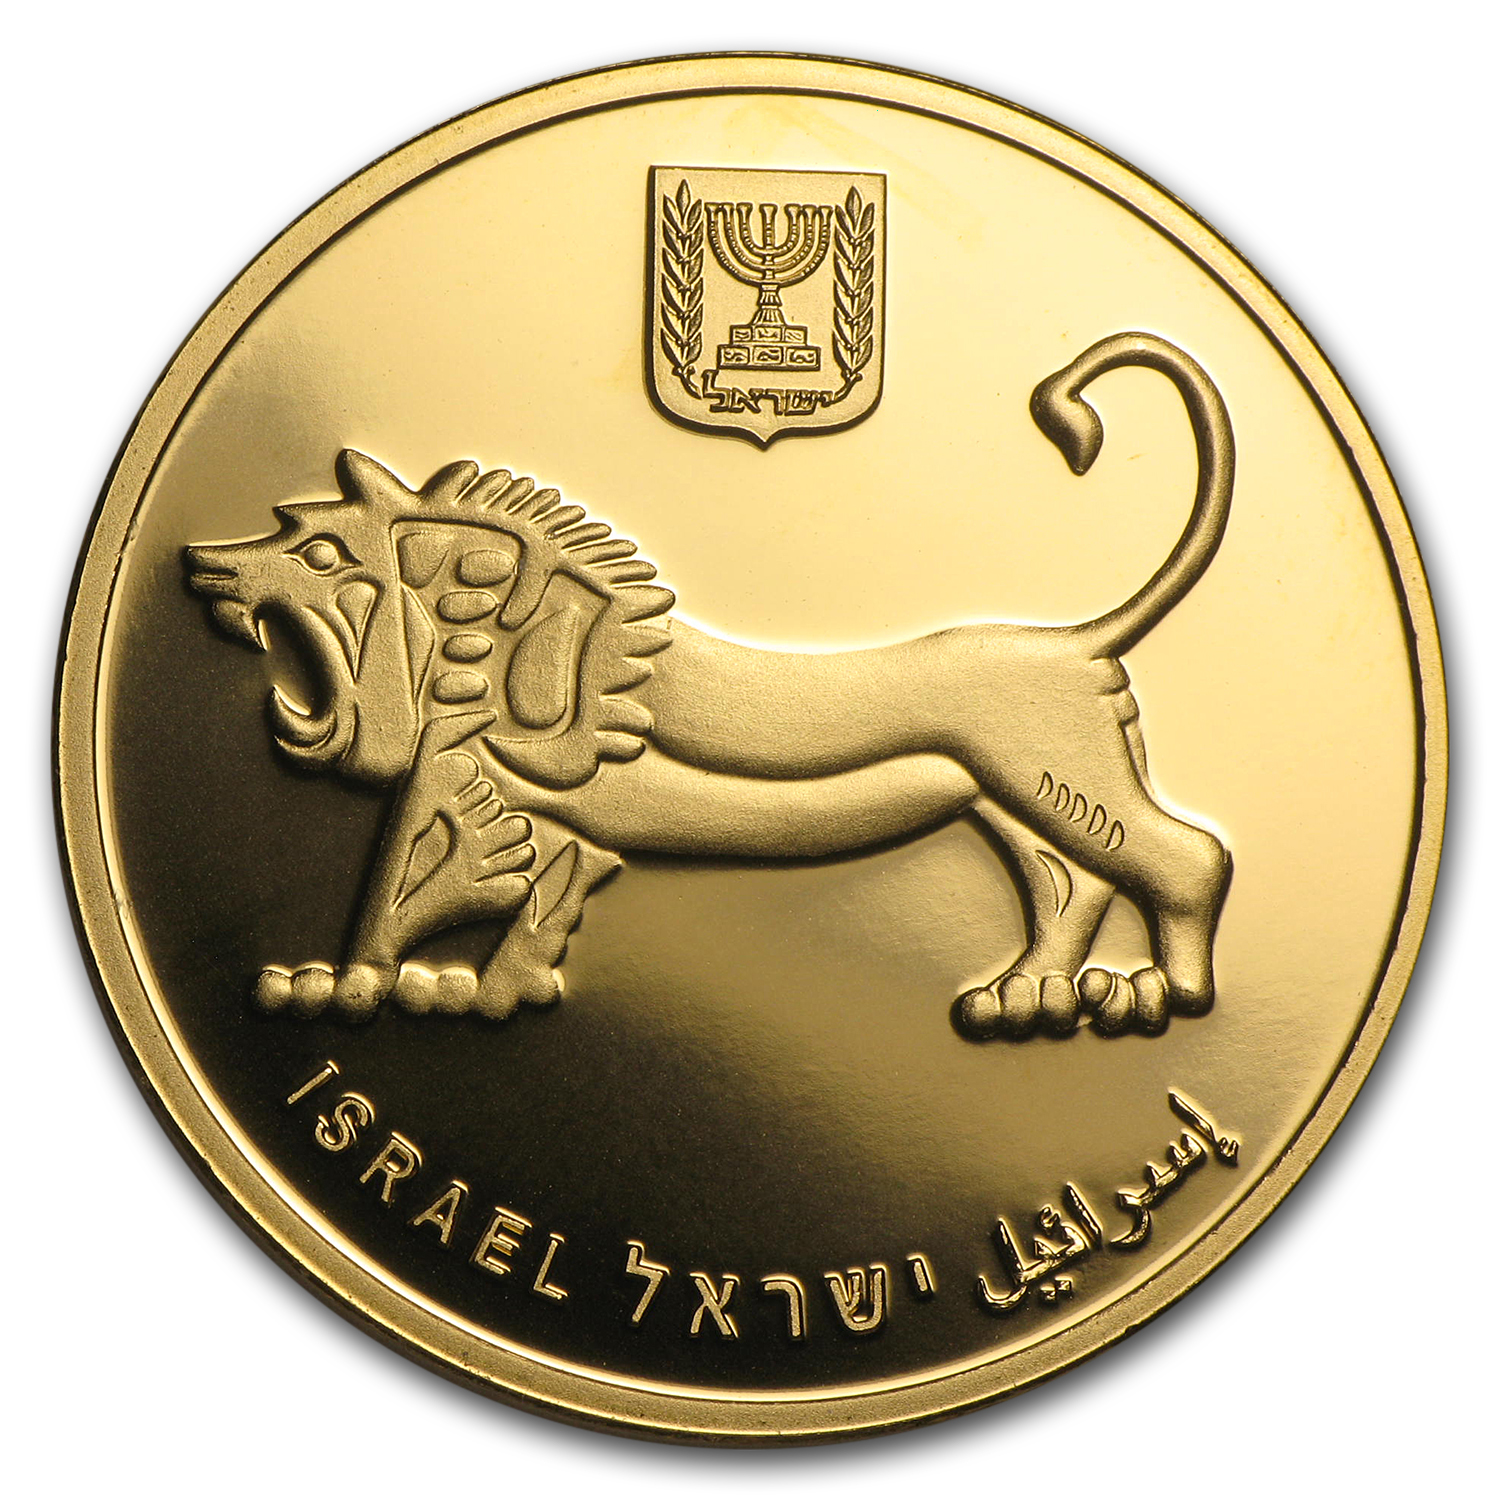 2011 Israel Western Wall 1 oz .9999 Gold Bullion Coin